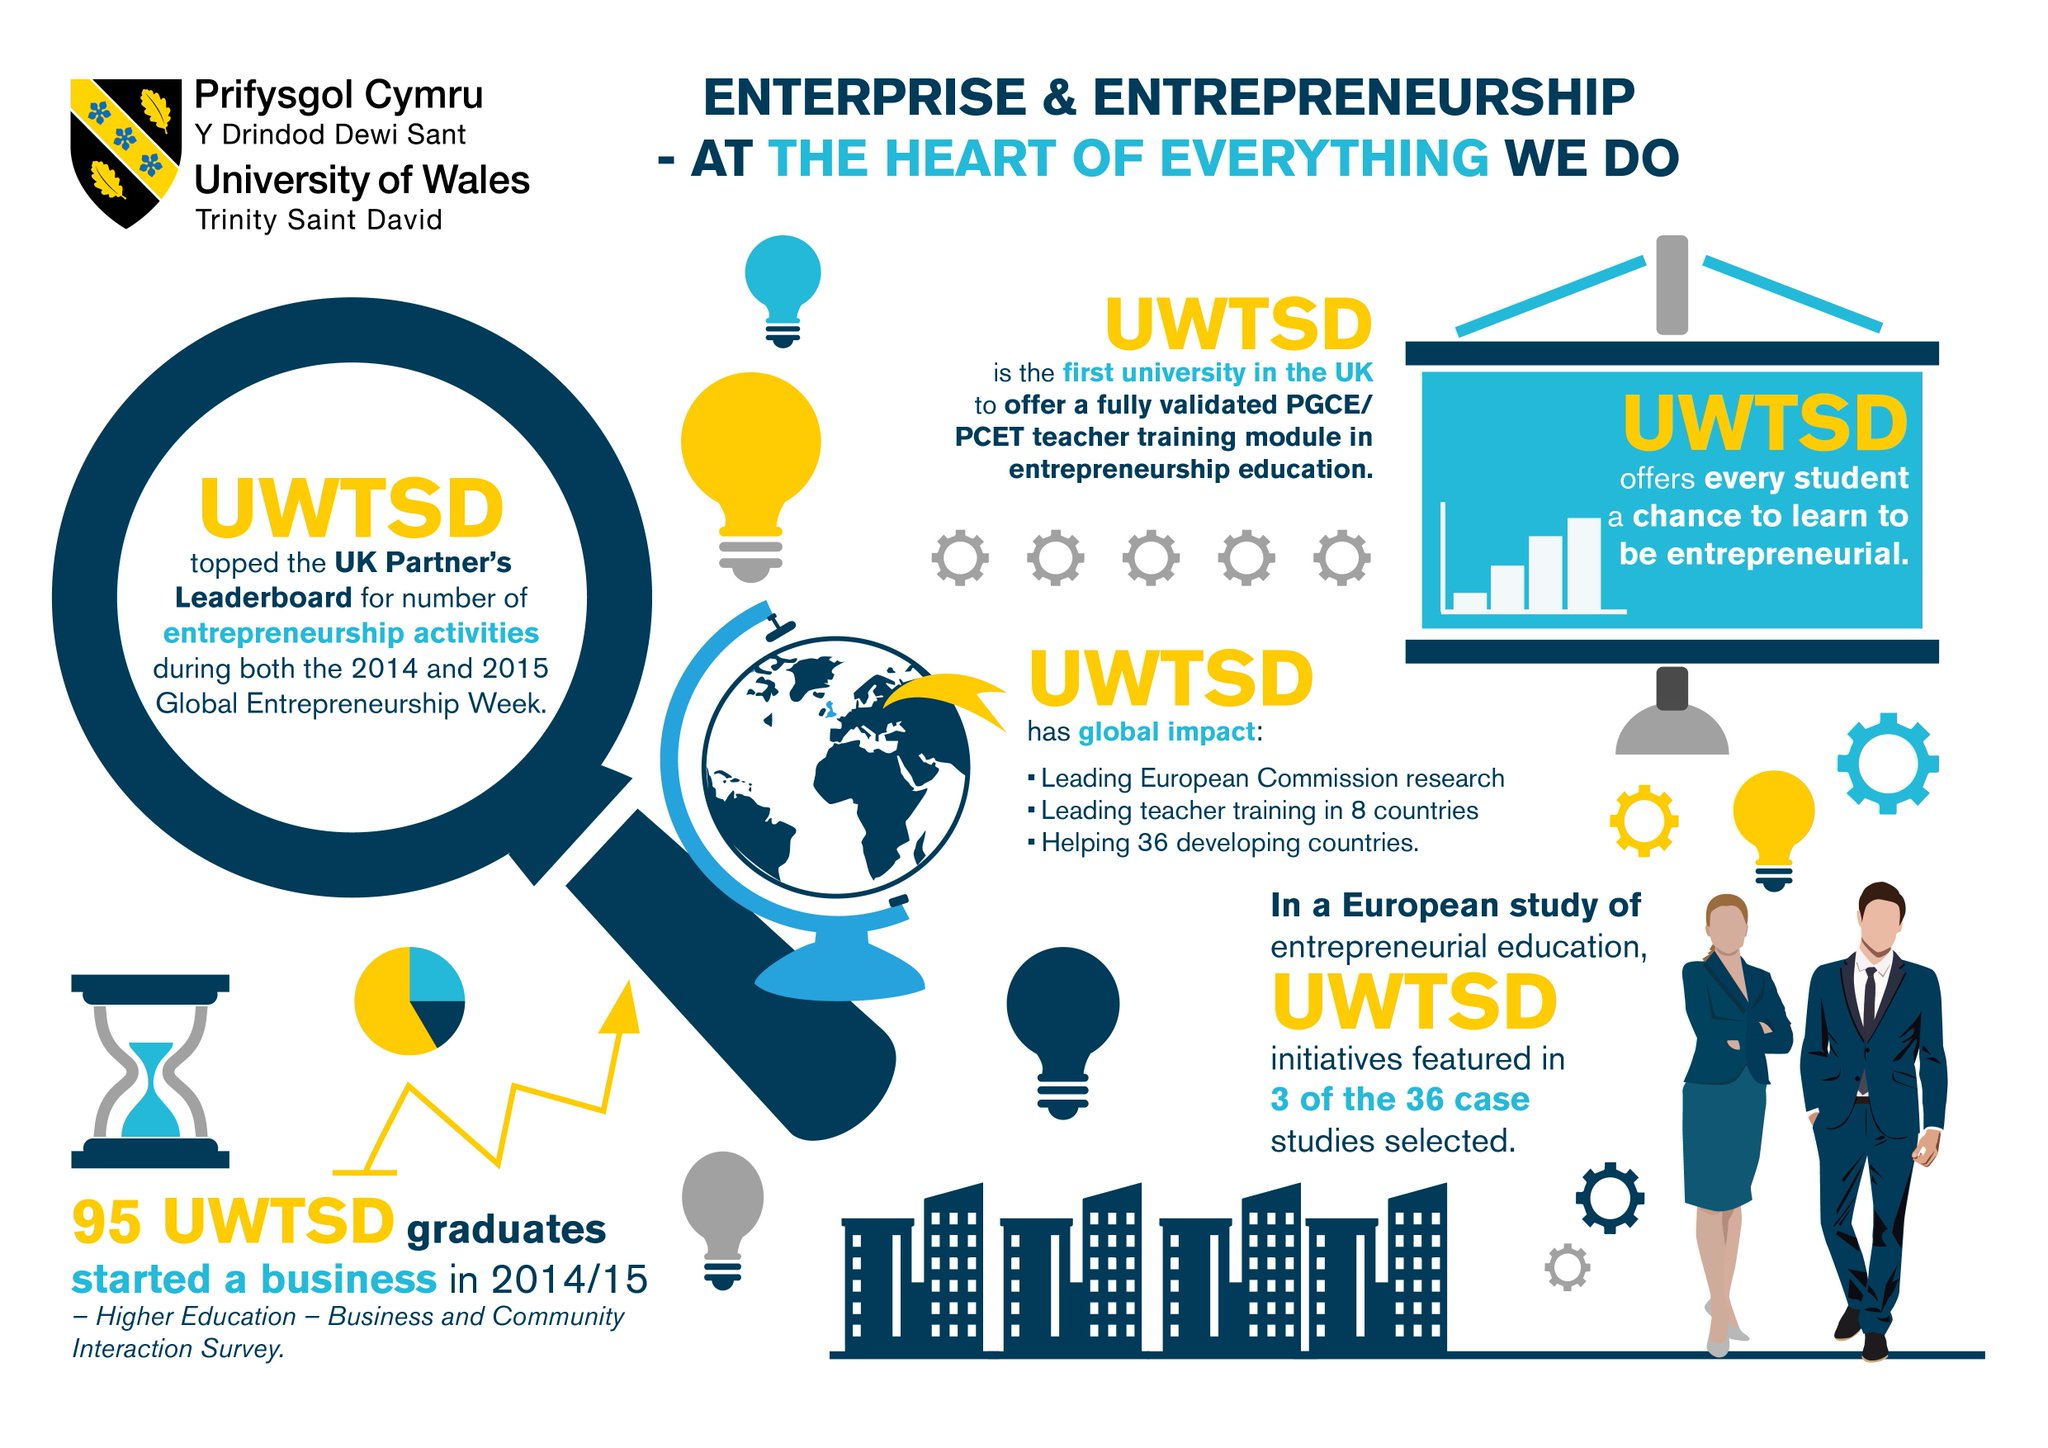 We love to nurture #enterprise @uwtsd! Check out #RacetoMarket @LifeDesignUWTSD https://t.co/iMqbdv5tBD on now! @AndyPena @EEUK #startups https://t.co/Wzg1jtIEjx